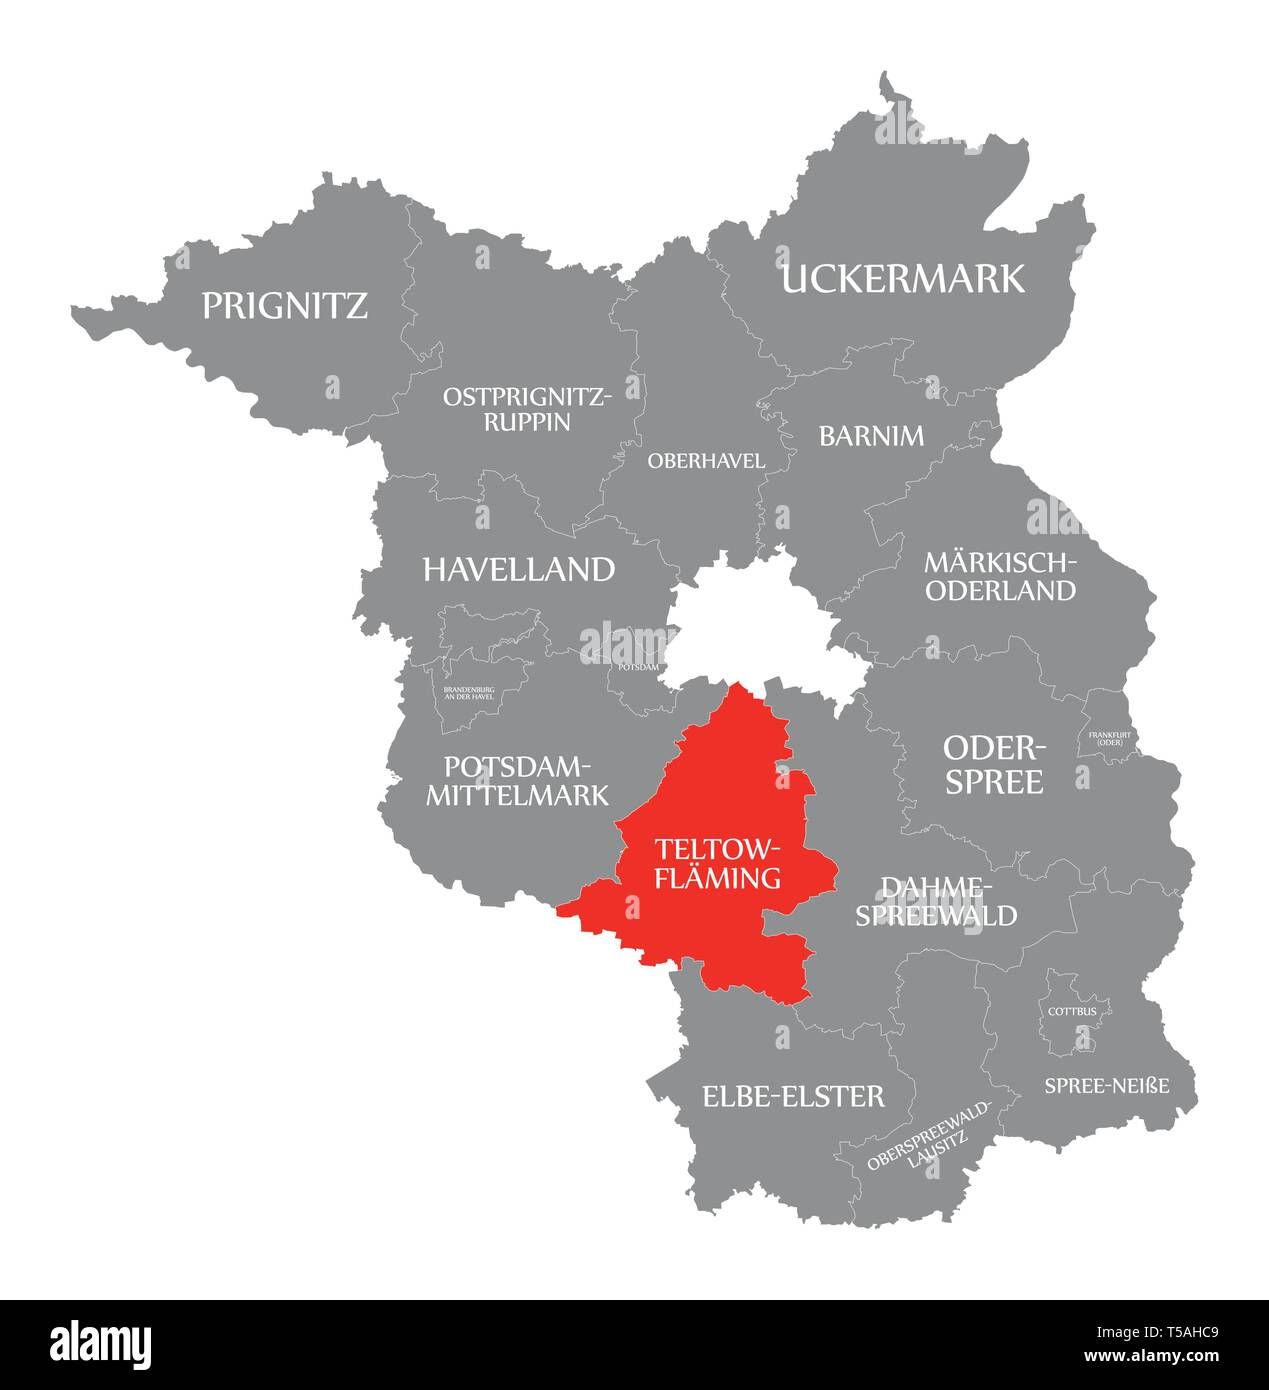 Teltow-Flaeming county red highlighted in map of Brandenburg Germany - Stock Image